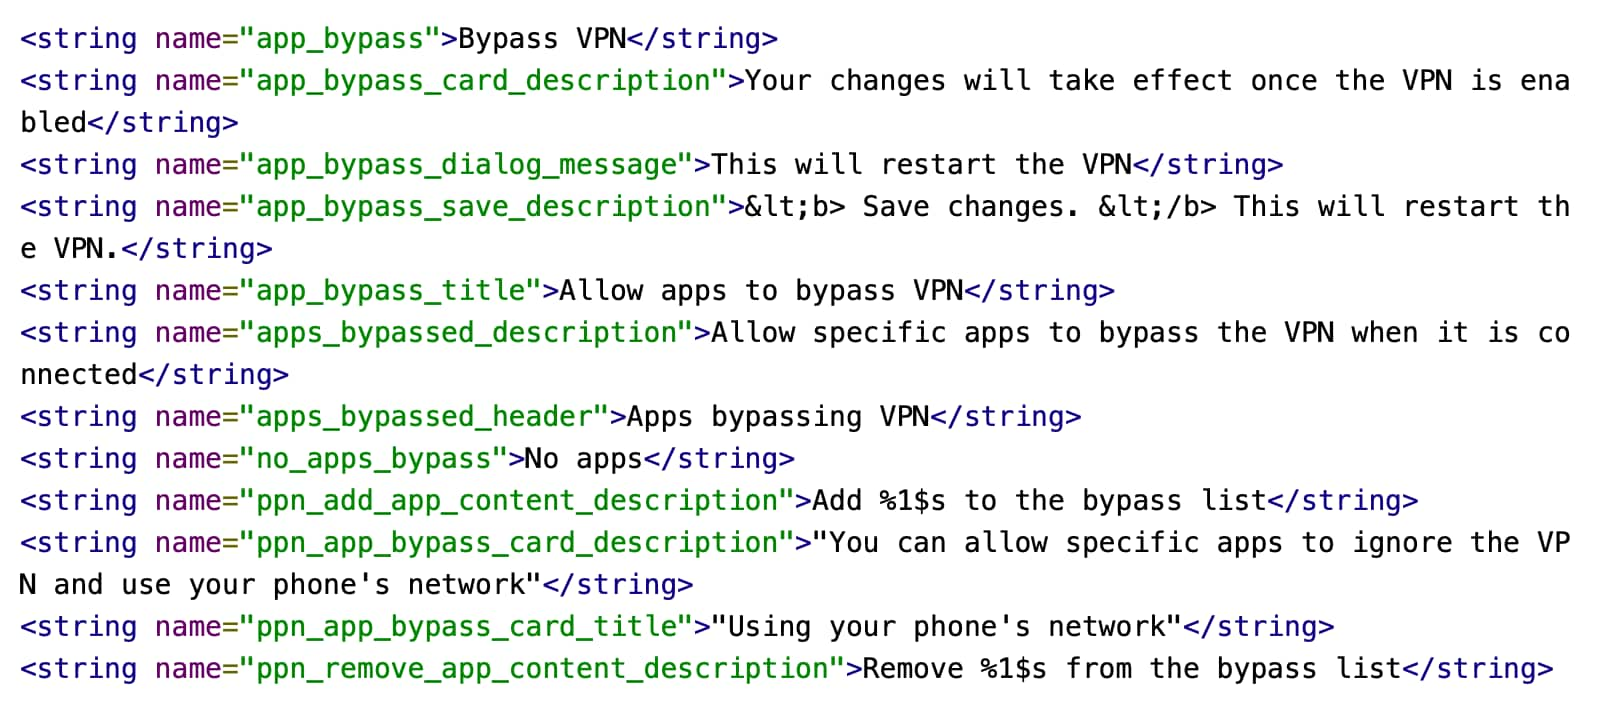 Apps whitelisted will ignore the VPN and route traffic from your phone's network directly.